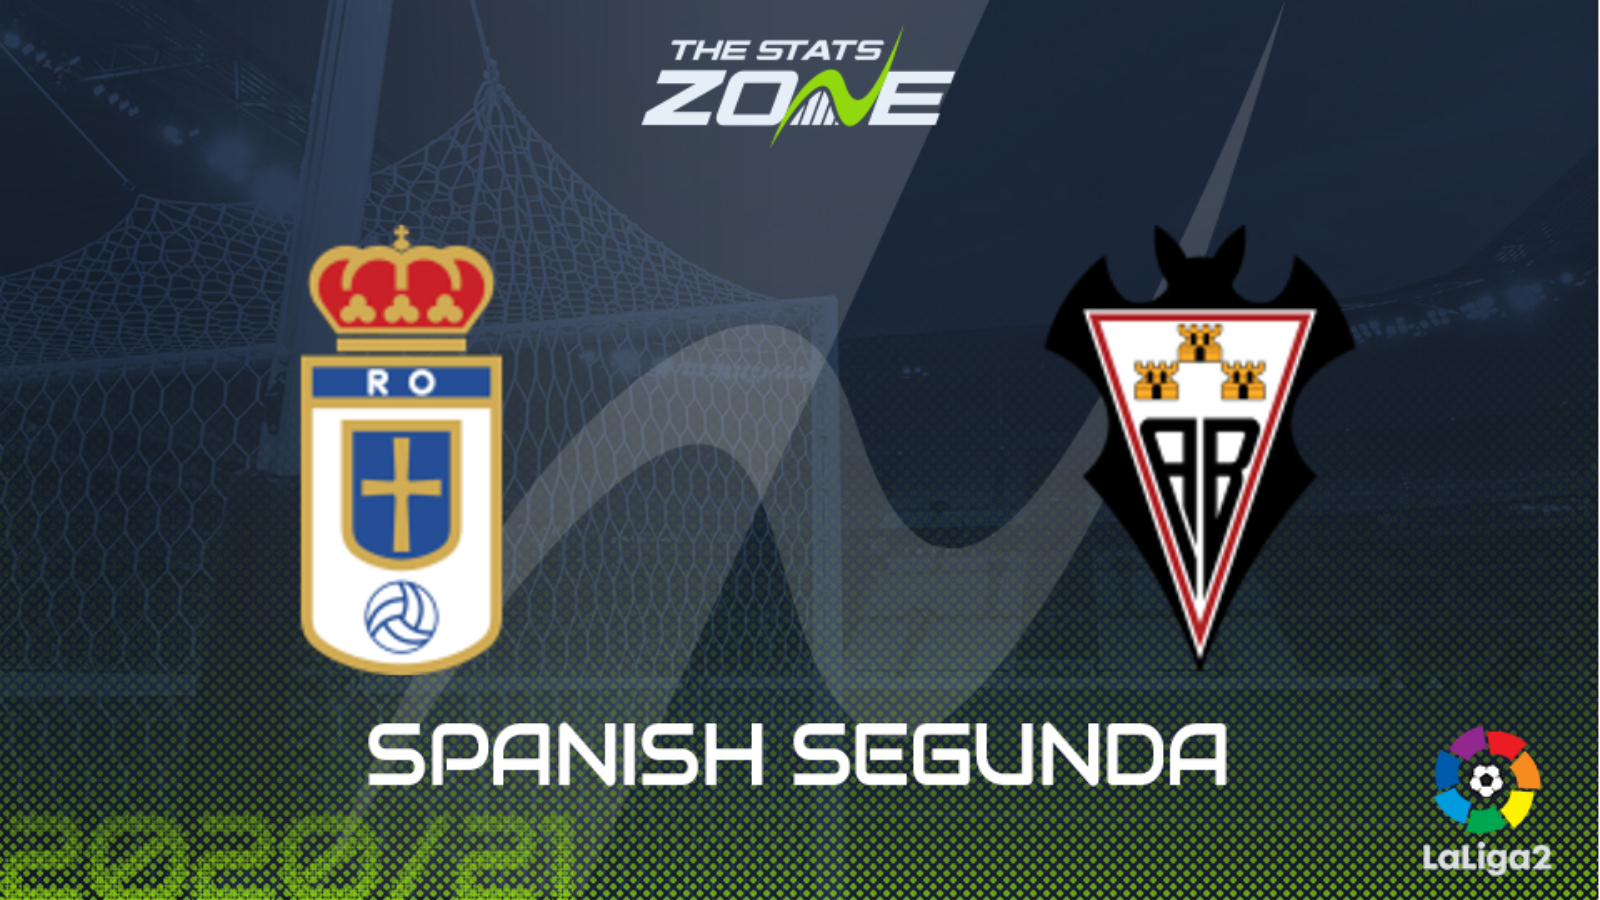 Spain segunda division betting tips how to get a free bet on paddy power